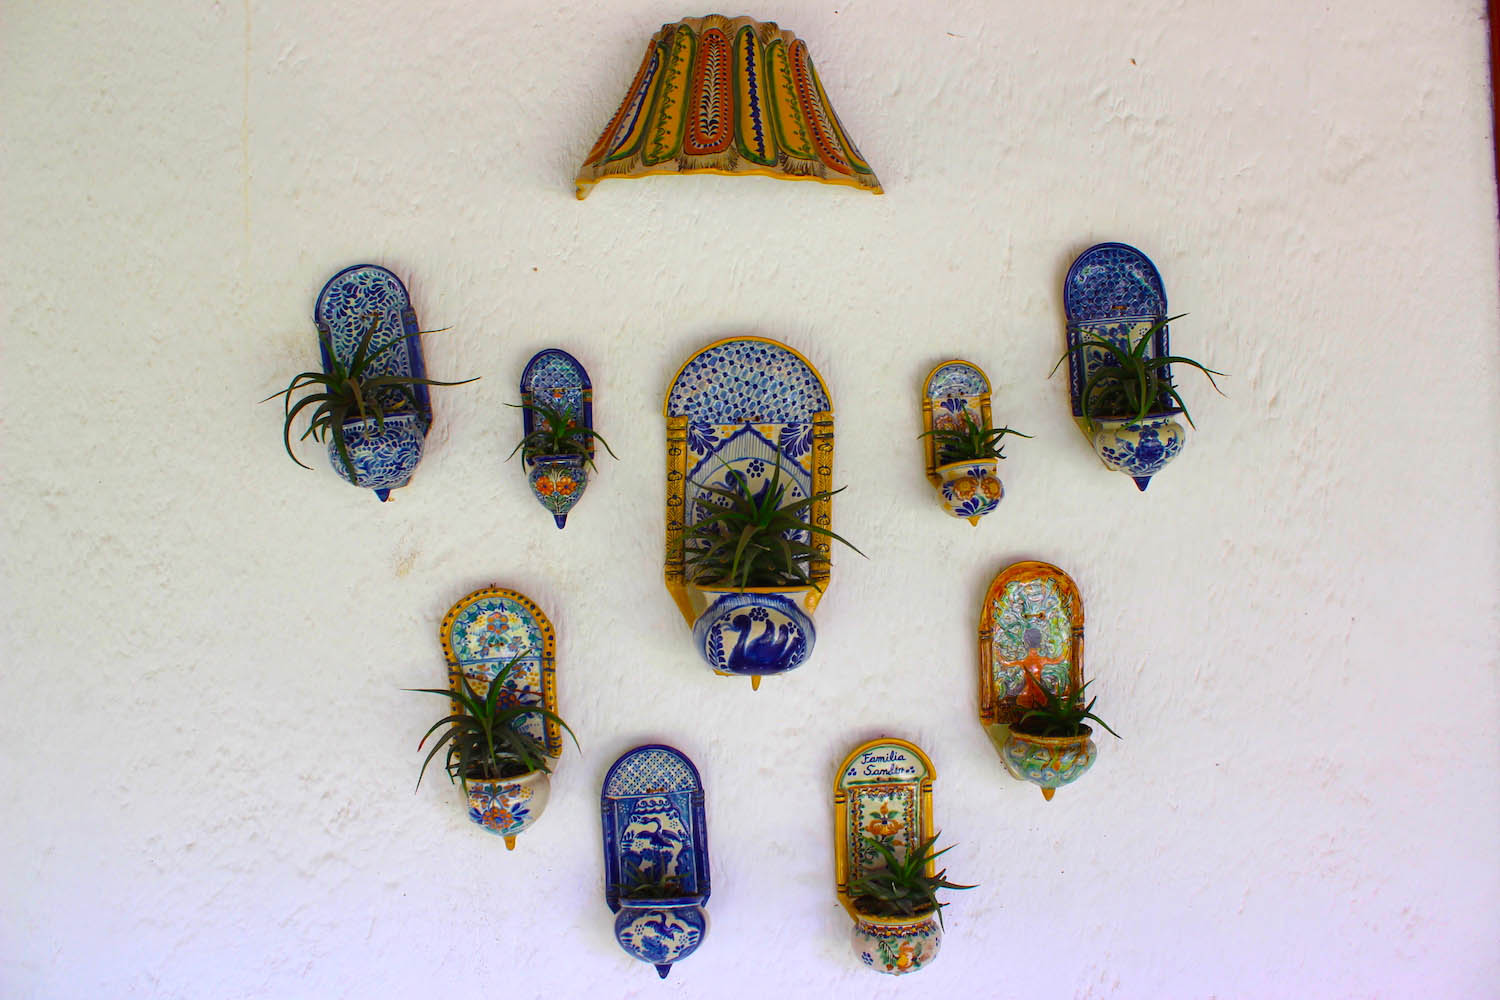 talavera ceramics potplants on wall